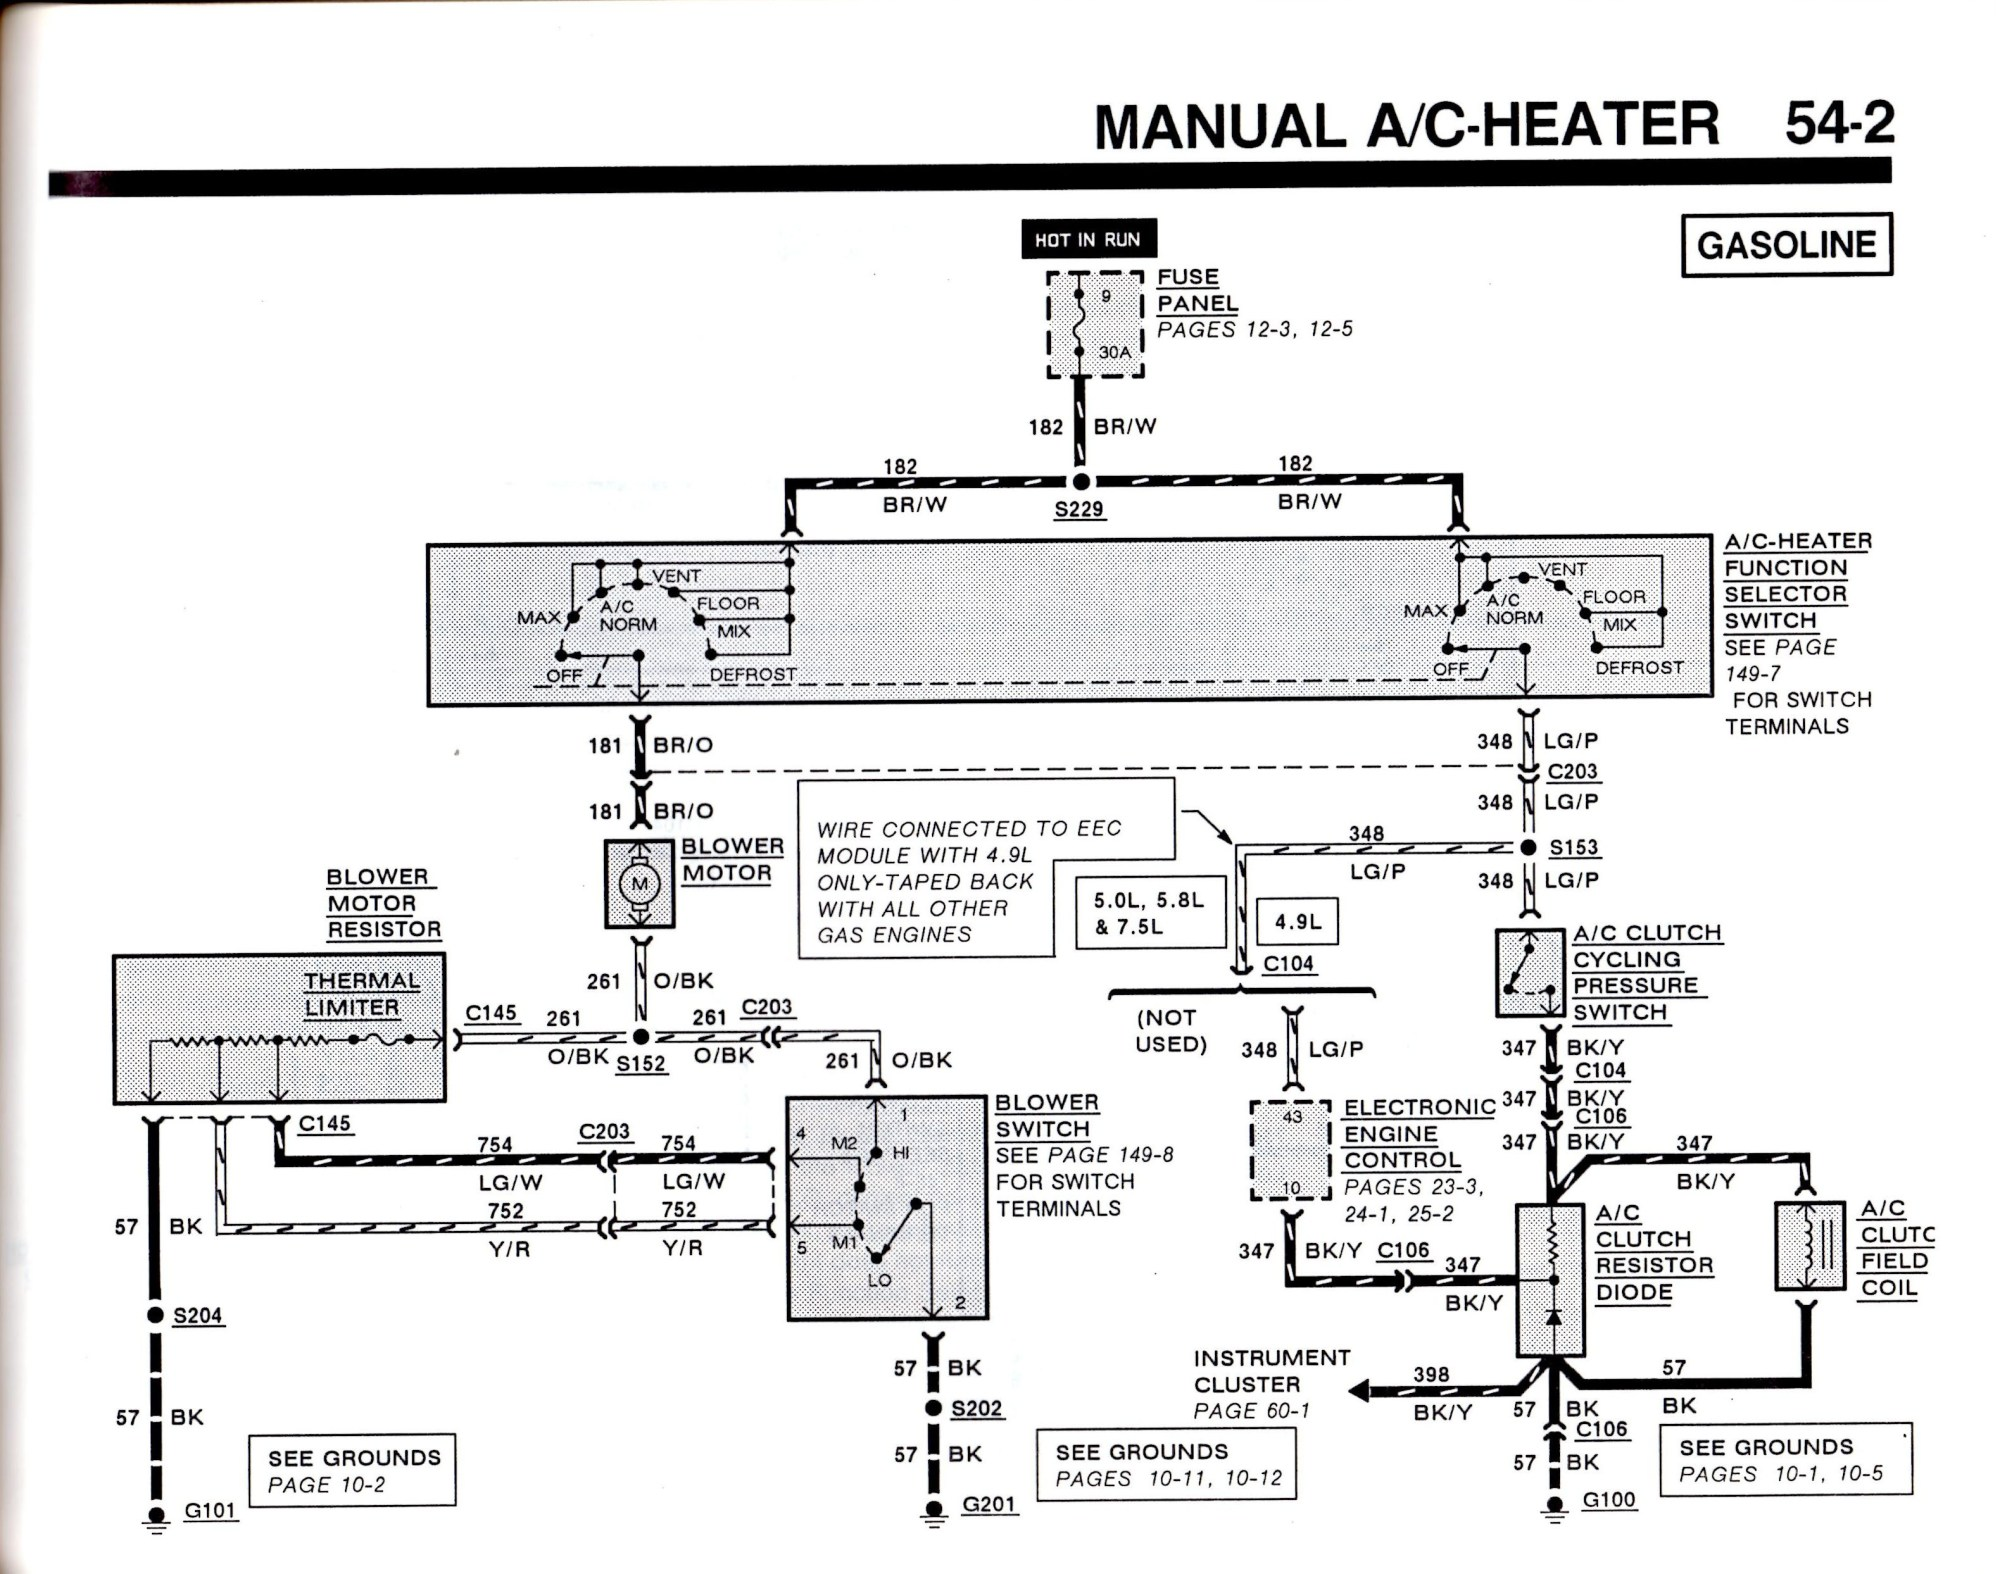 hight resolution of 2000 ranger ac wiring diagram wiring diagrams scematic 1994 ford ranger ac wiring diagram 2001 ford ranger ac wiring diagram